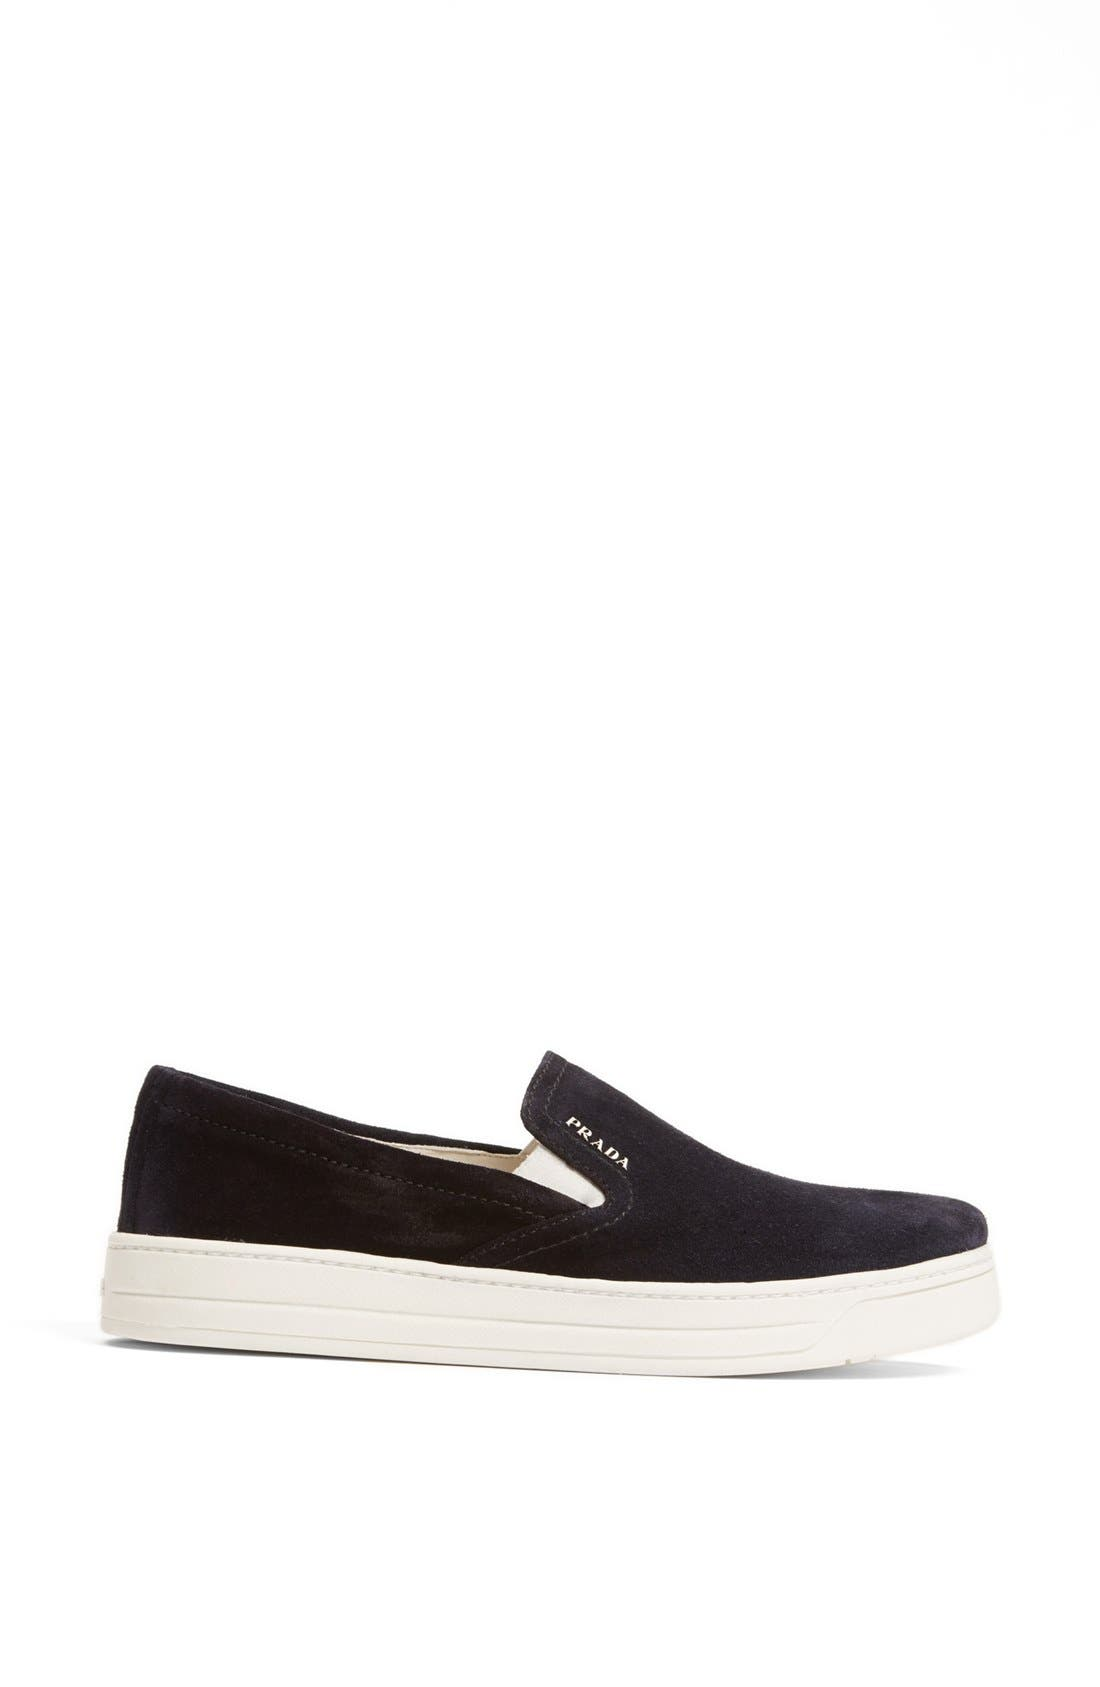 Slip-On Sneaker,                             Alternate thumbnail 57, color,